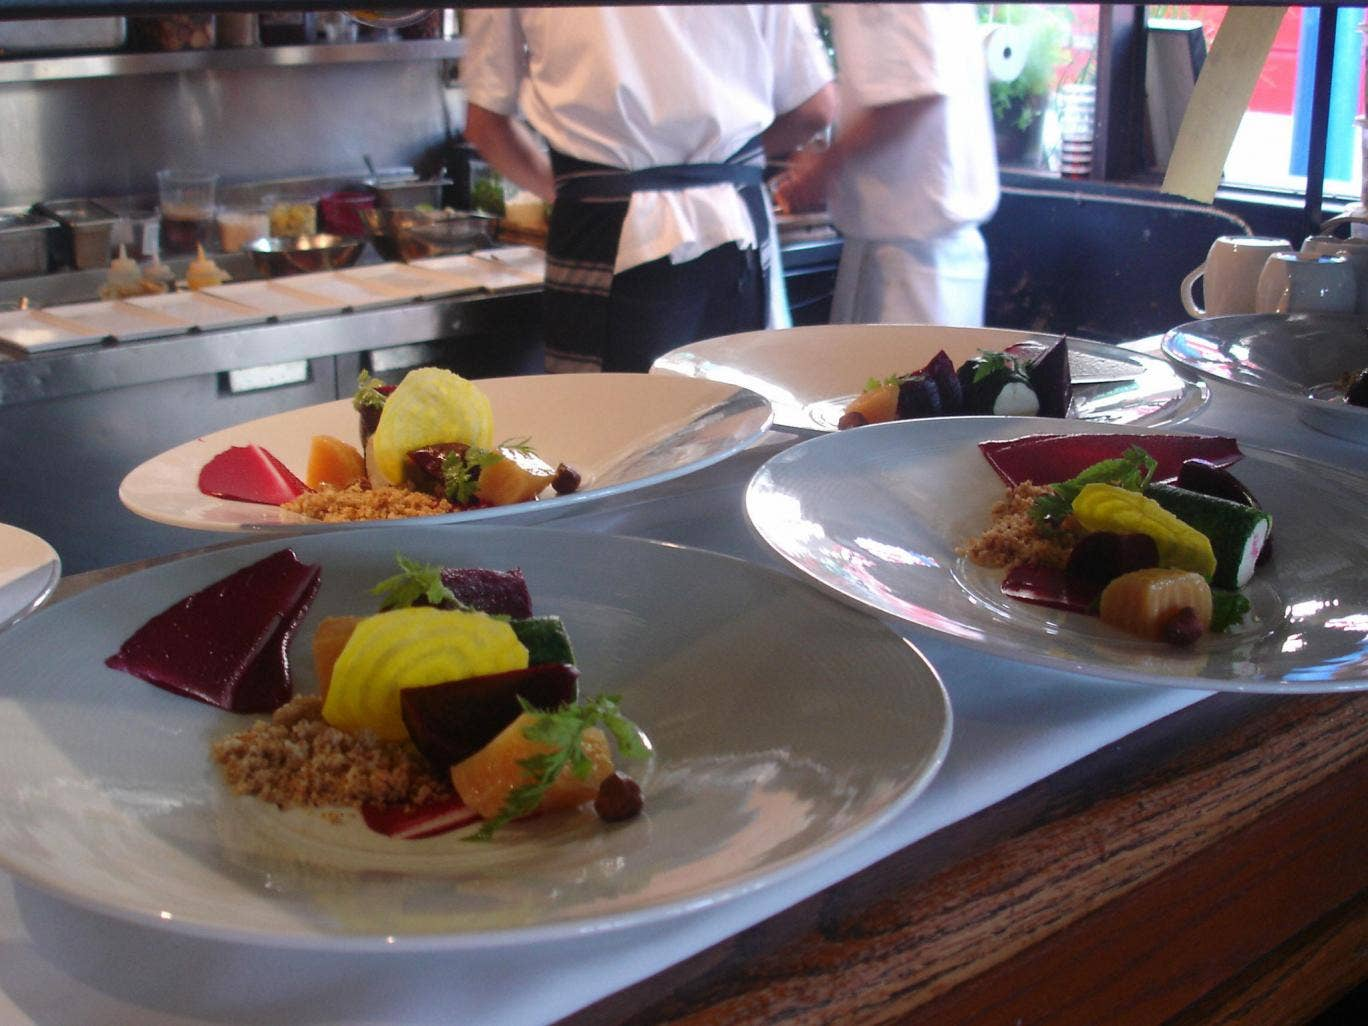 Carry on dining: seasonal indulgence continues